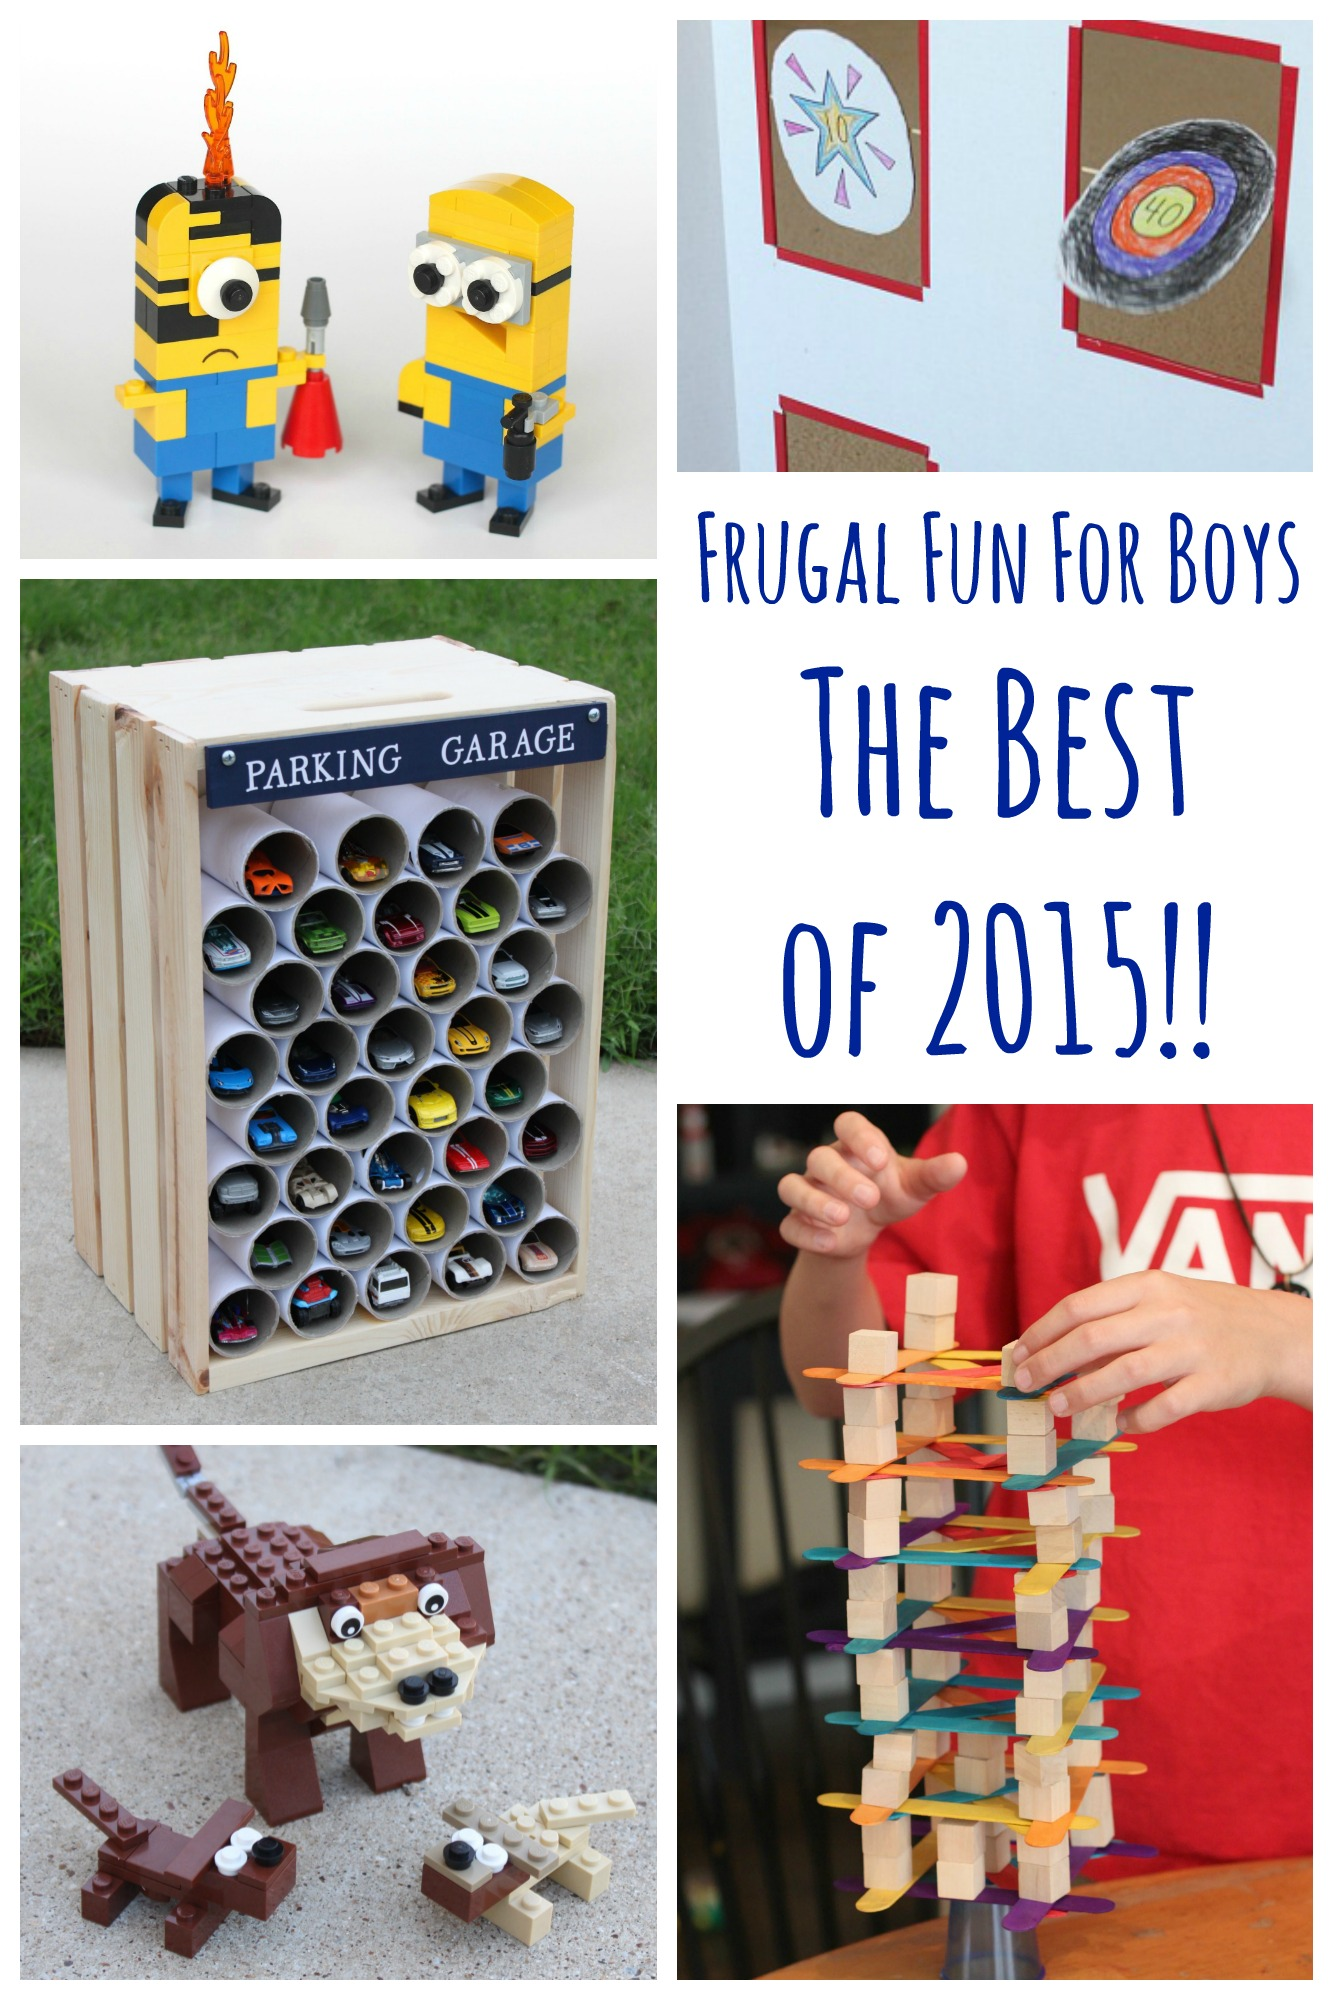 Frugal Fun for Boys - The Top 15 Posts of 2015